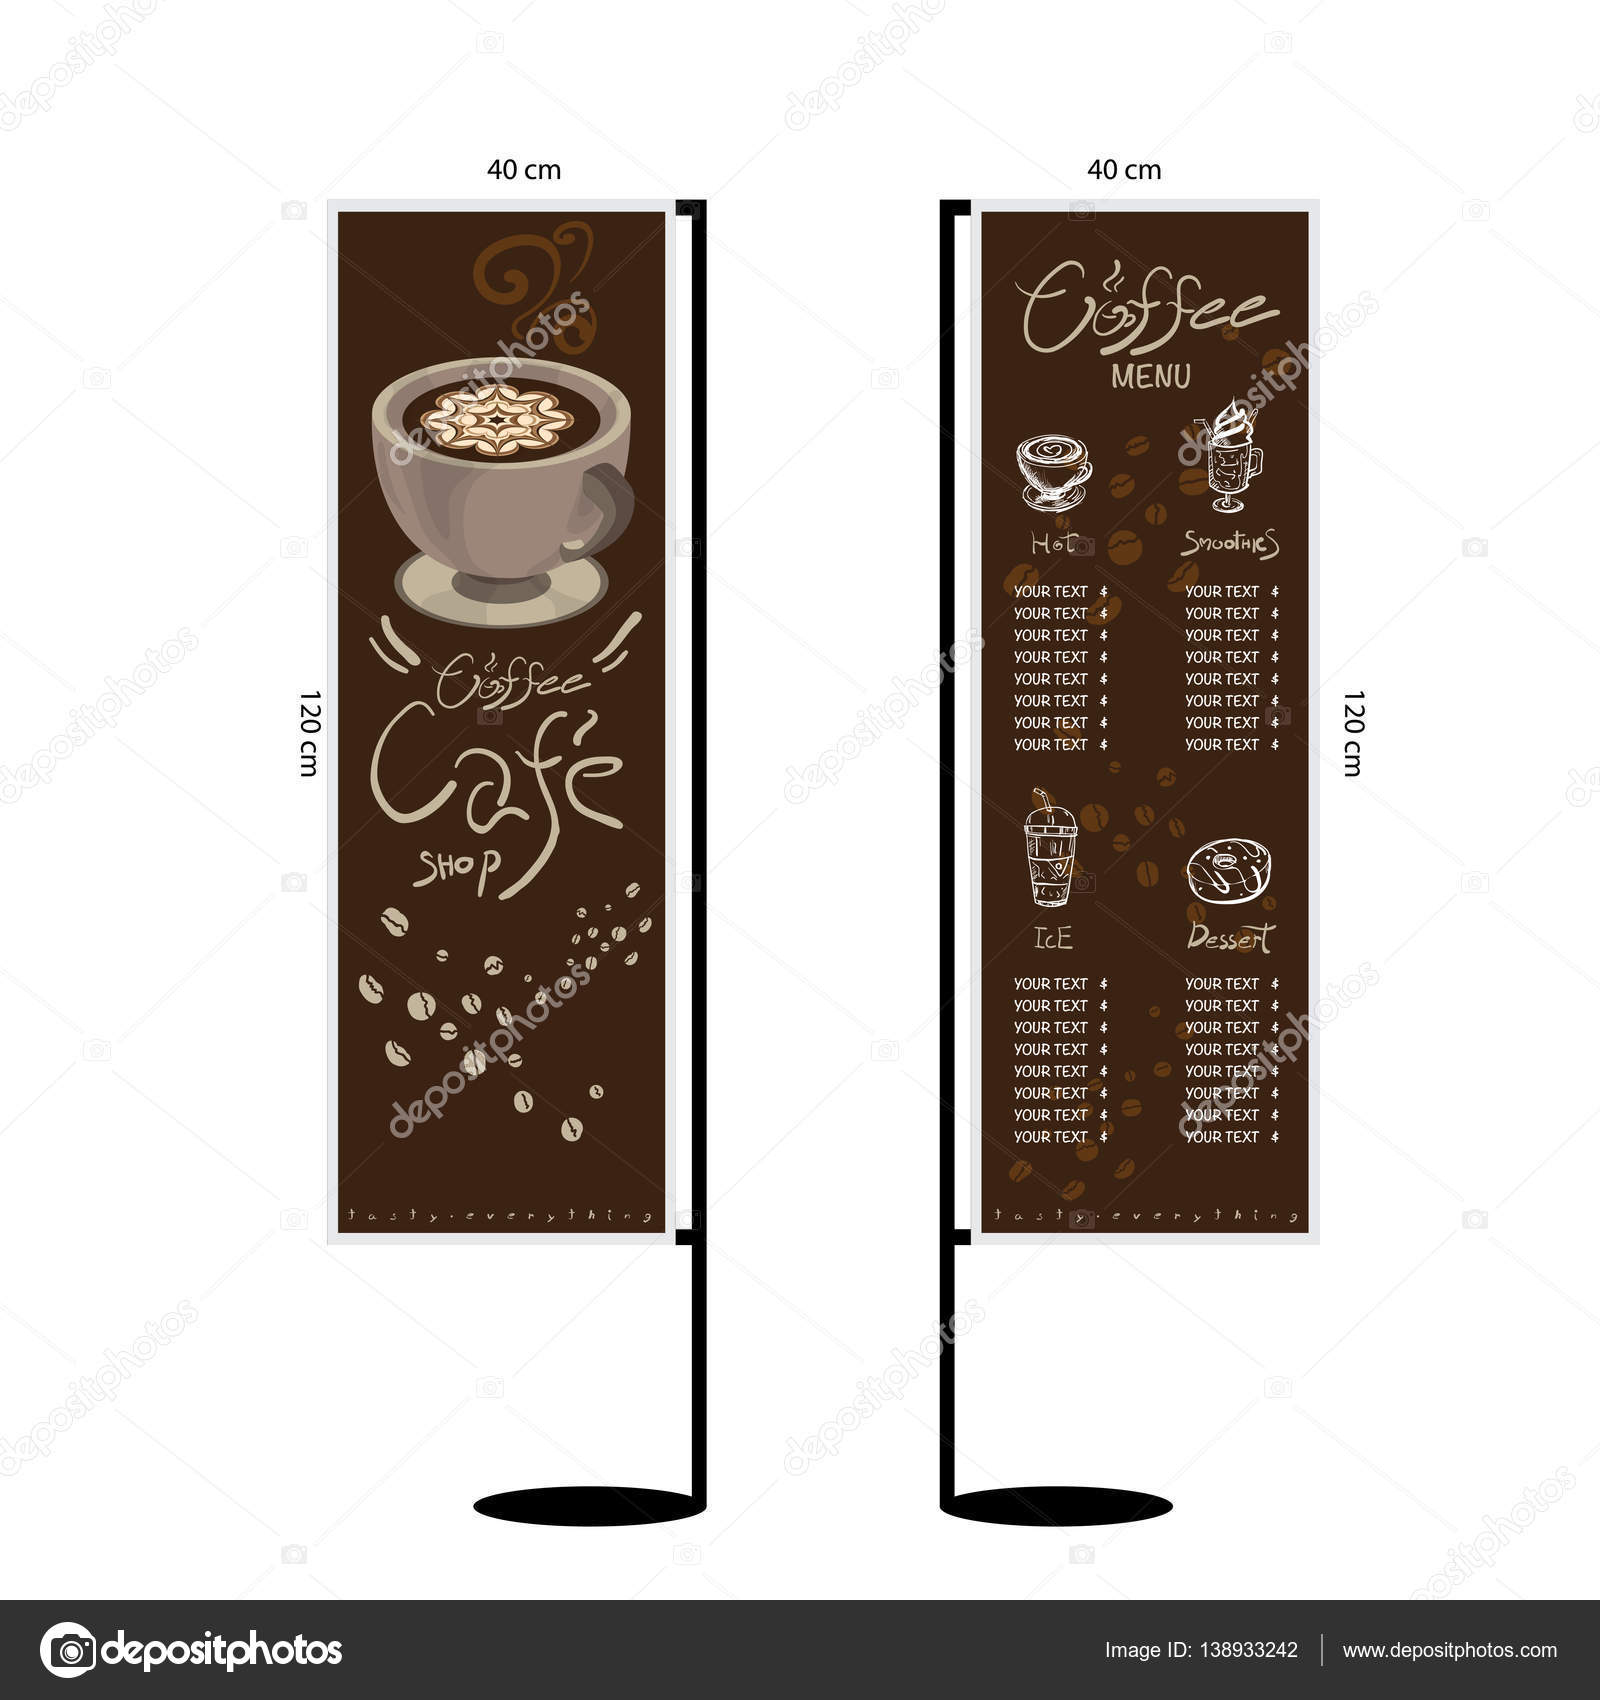 Coffee Menu Graphic Design Objects Template Vector By Foontntd